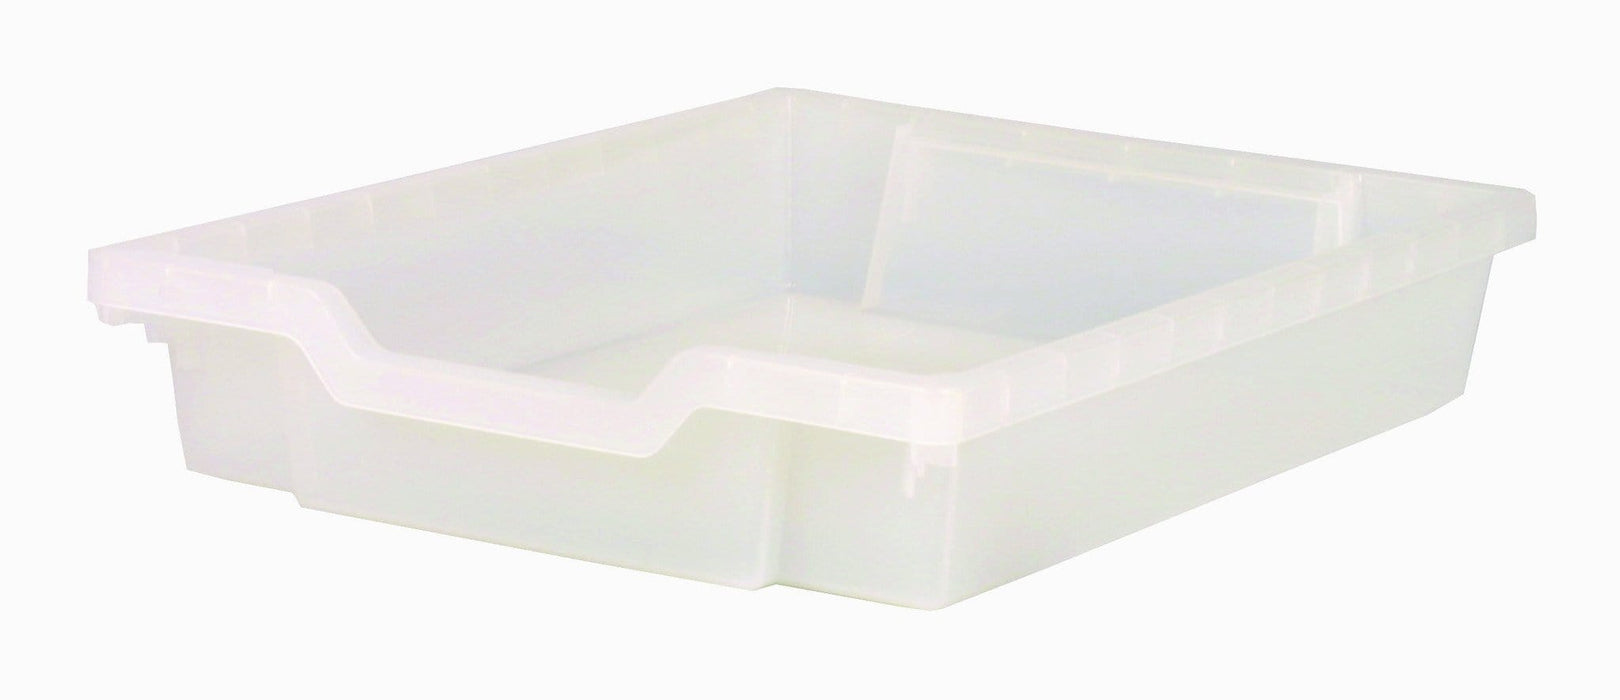 GratStack (6 x F1 Trays) GS621 (Castors Available)